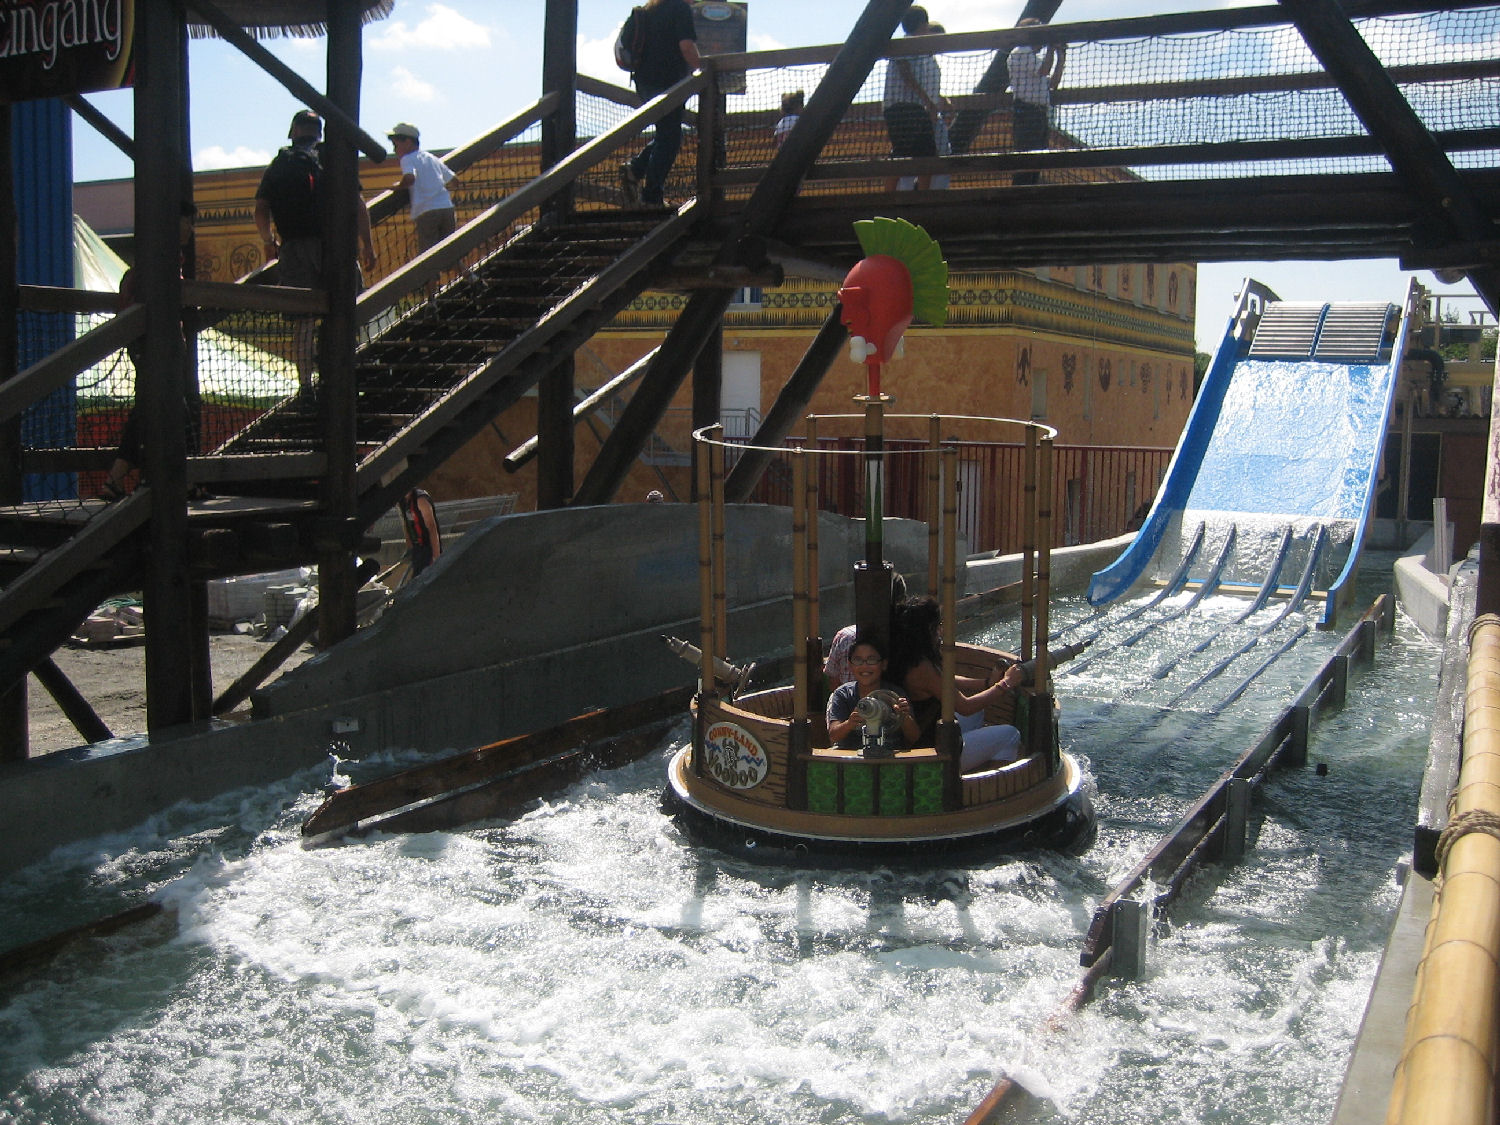 Interactive Raft Ride, Voodoo, Connyland Park, Switzerland